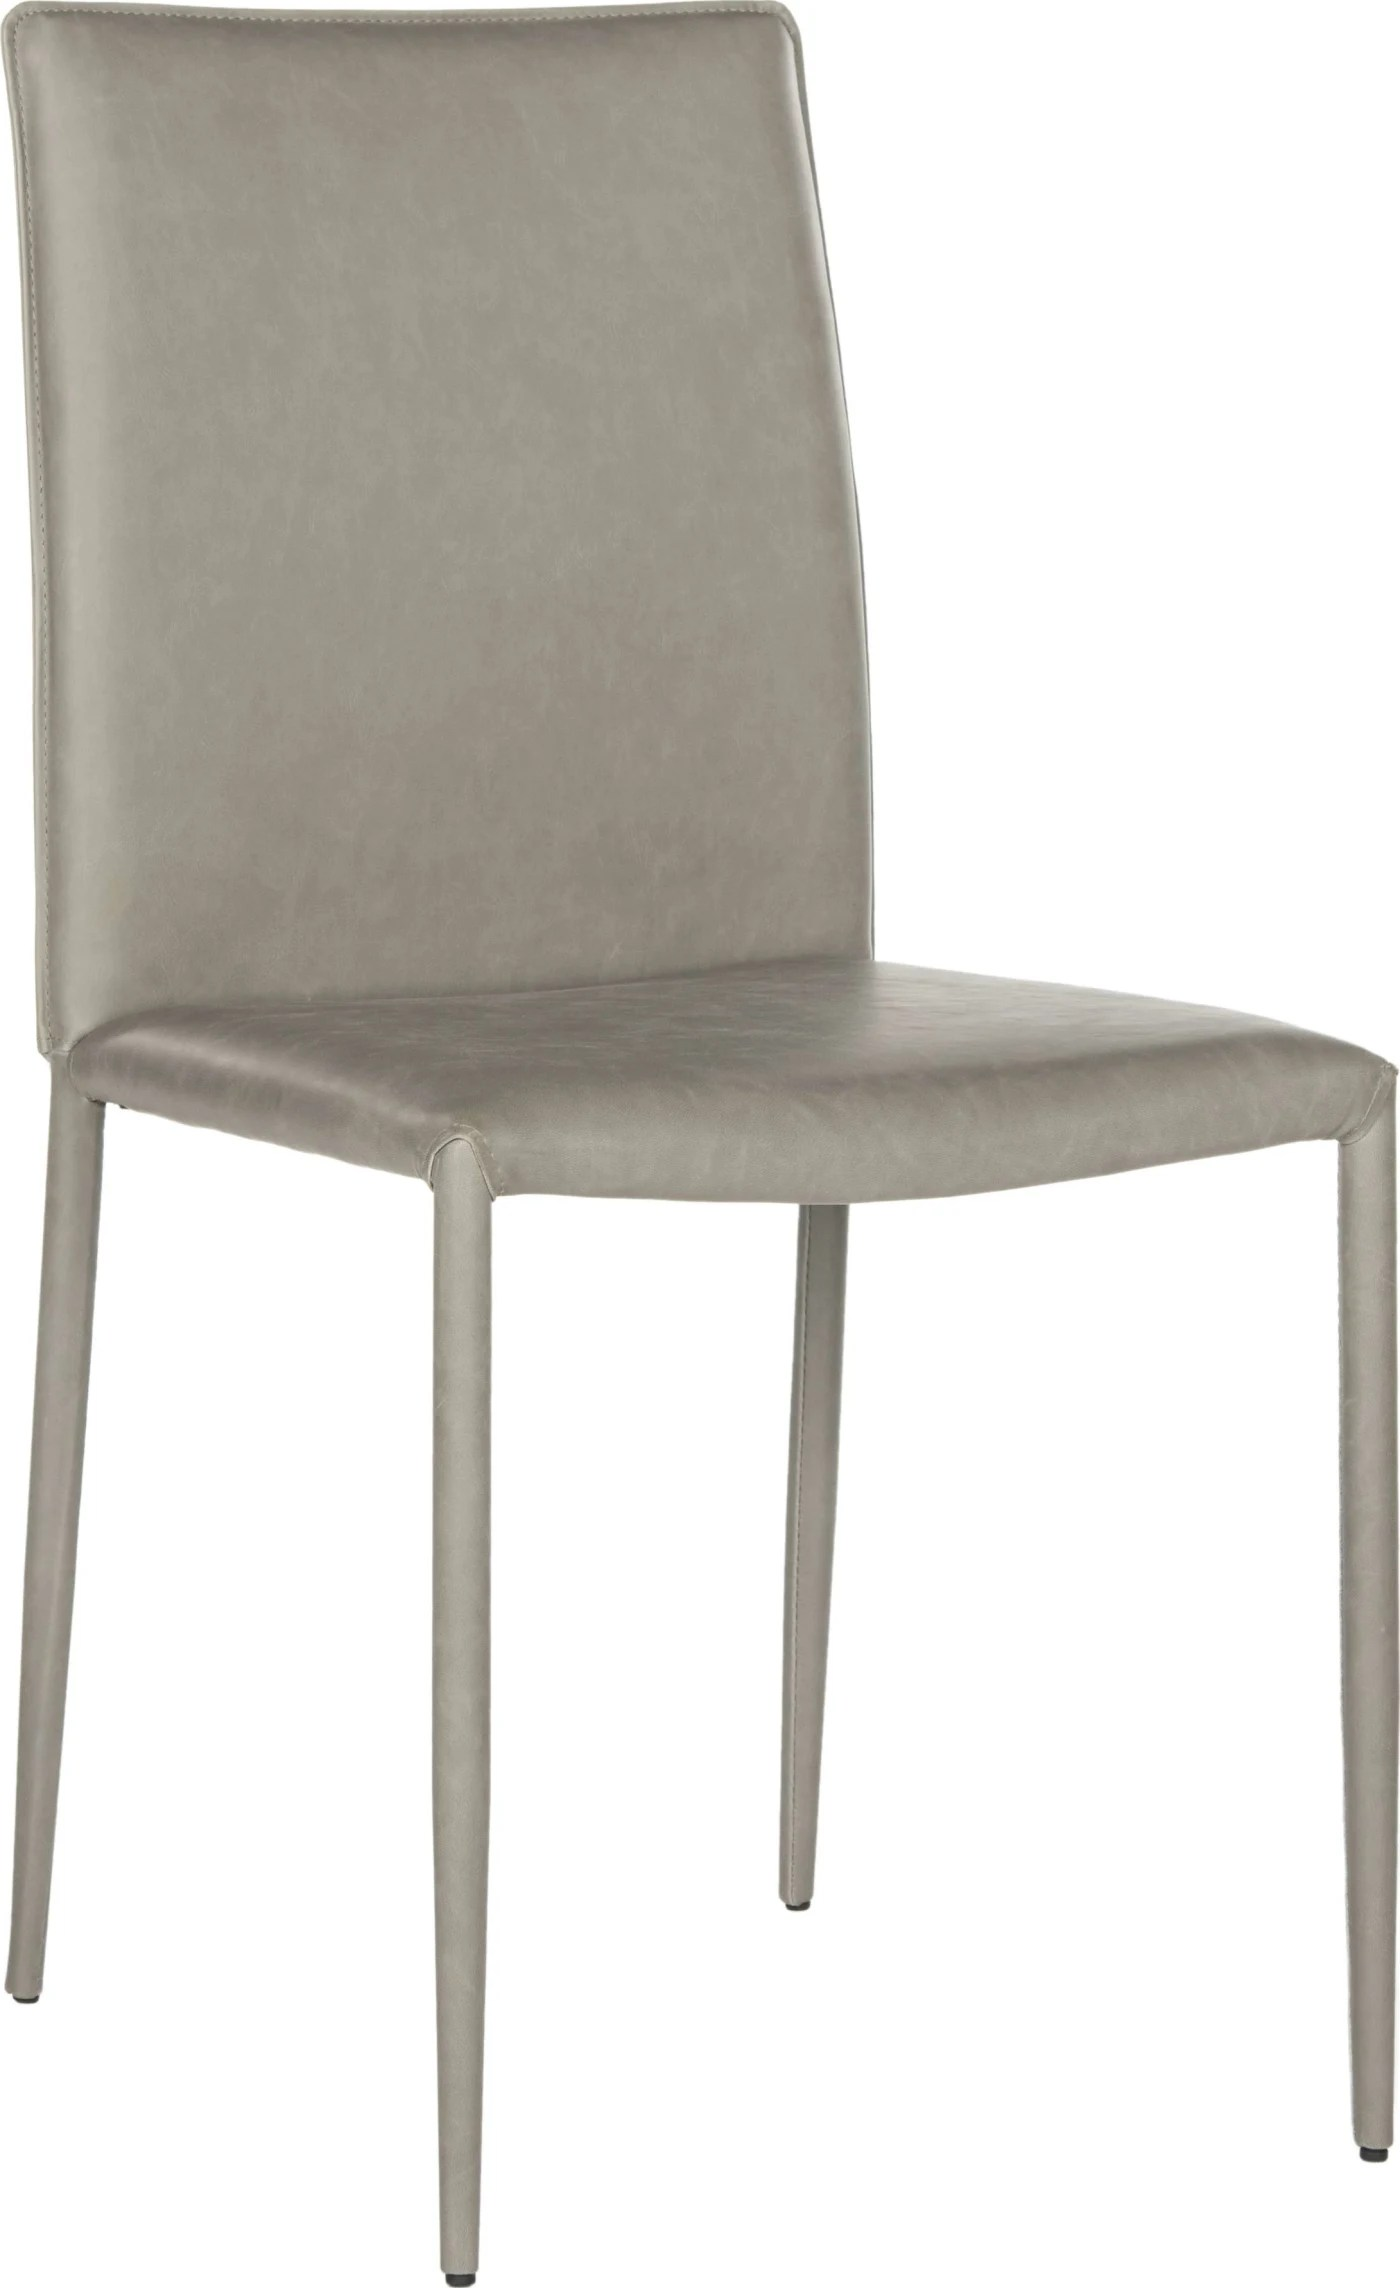 safavieh karna dining chair outdoor wicker chairs uk antique grey 19 quot set of 2